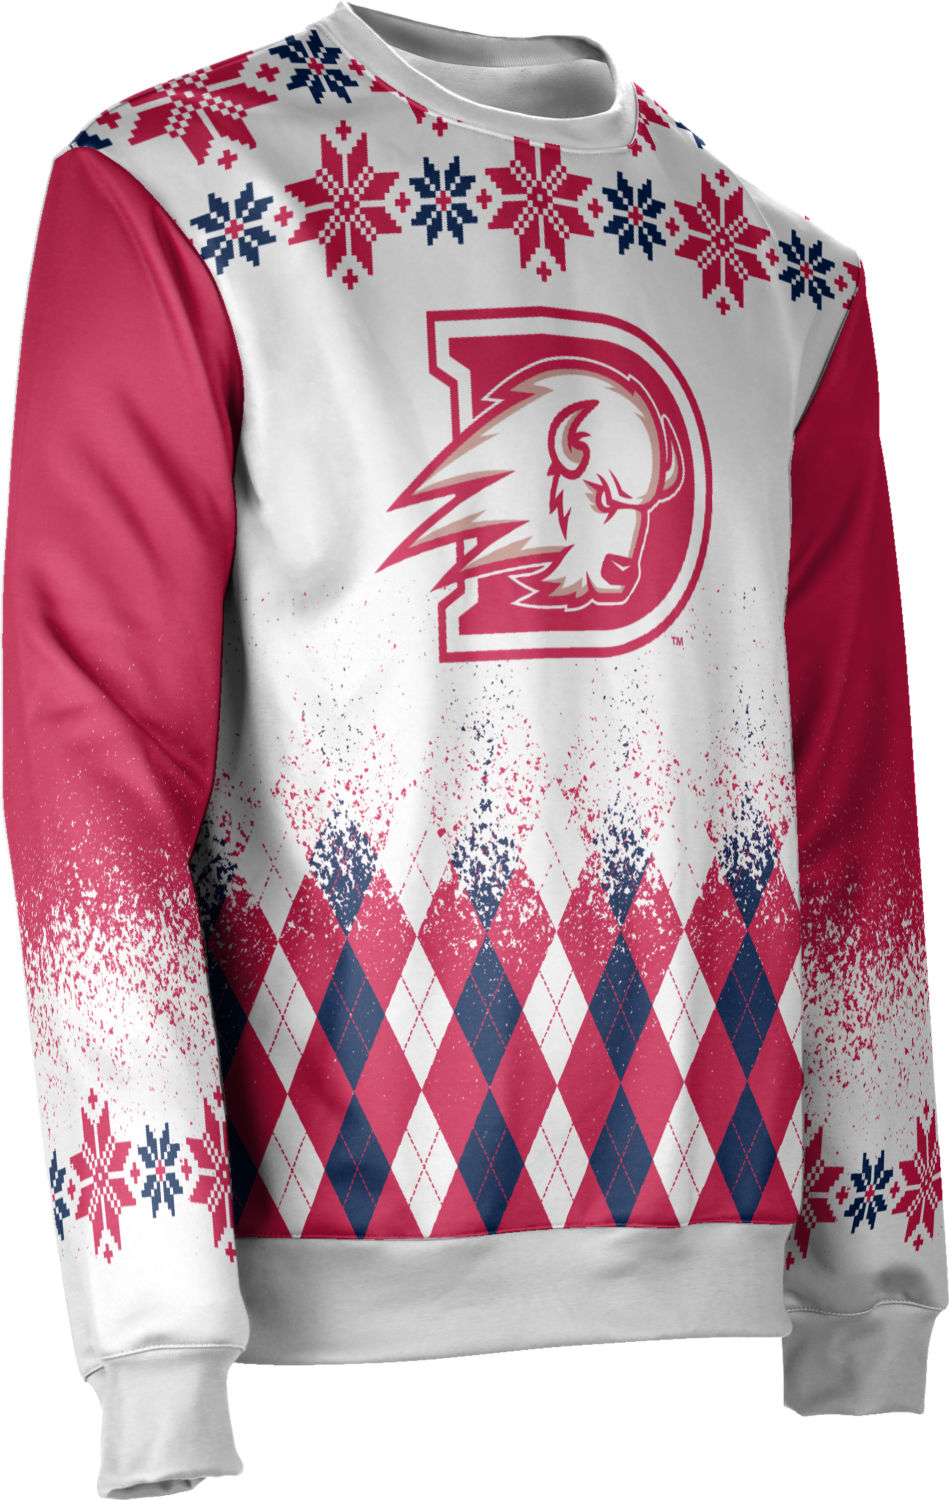 Dixie State University: Unisex Ugly Holiday Sweater - Jolly